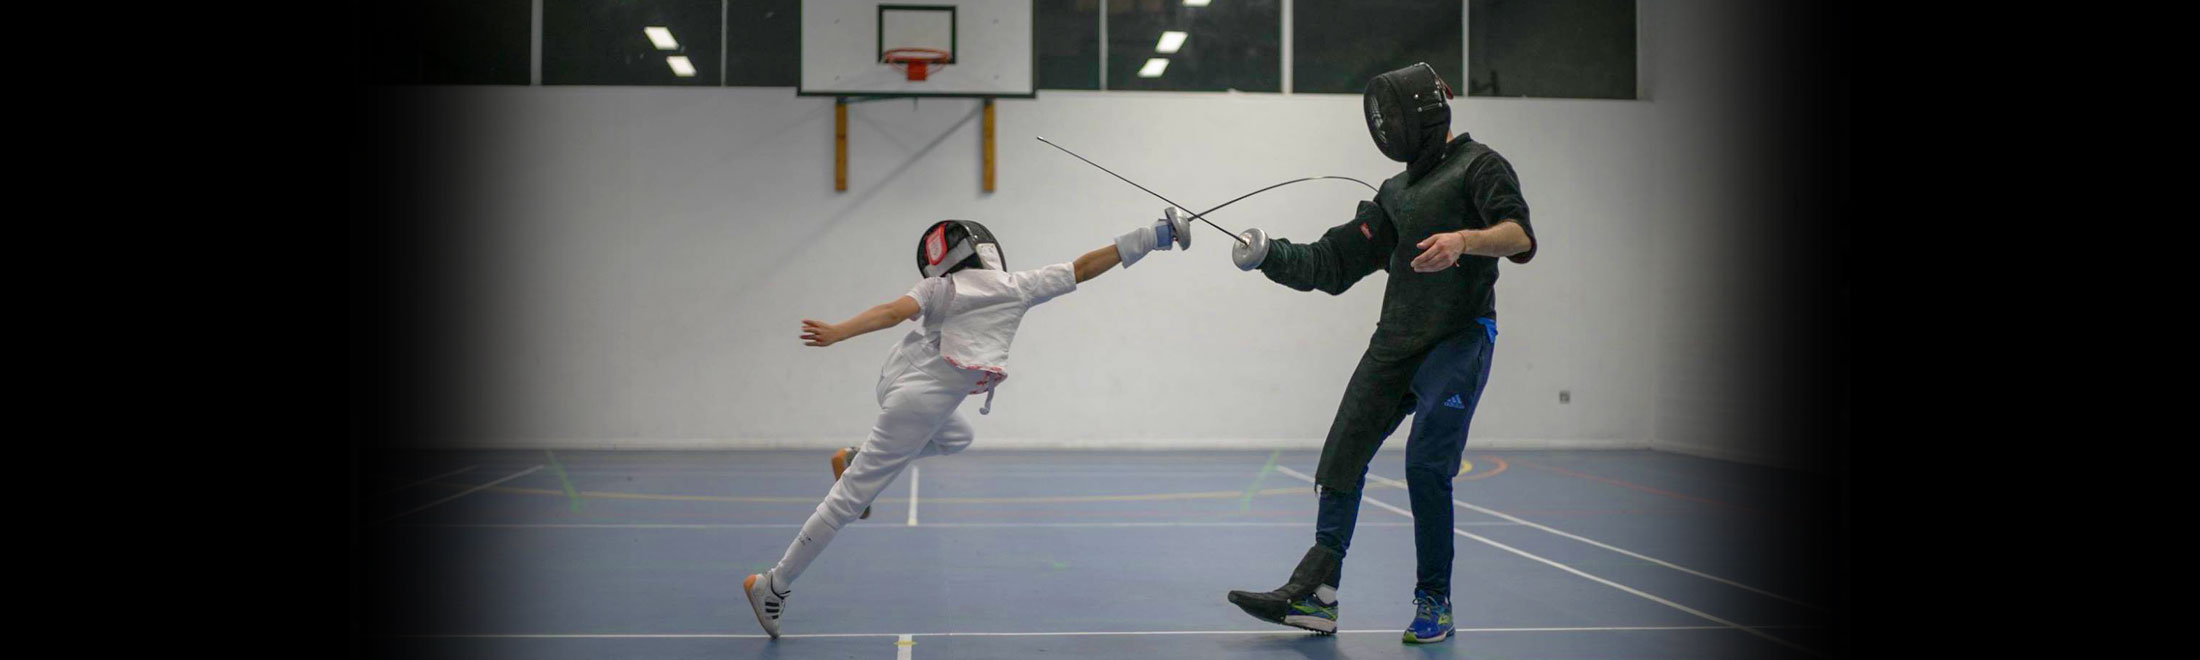 epee fleche dream fencing